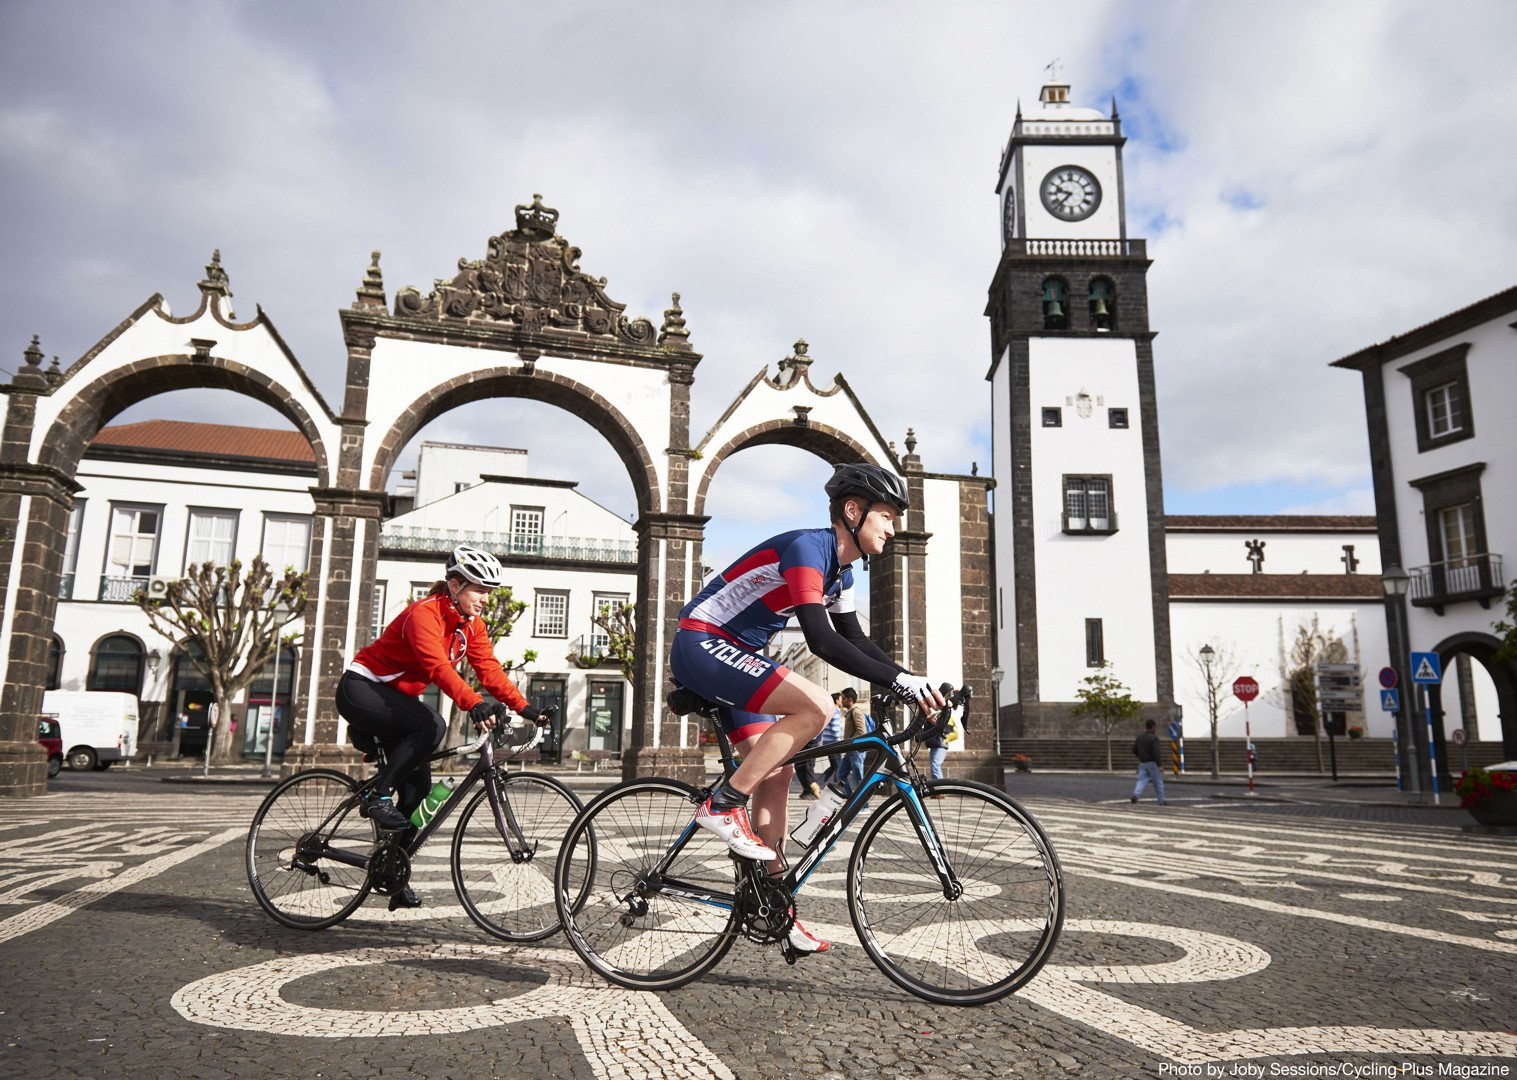 road-cycling-tour-in-the-azores-sao-miguel-skedaddle.JPG - The Azores - Lost World of Sao Miguel - Road Cycling